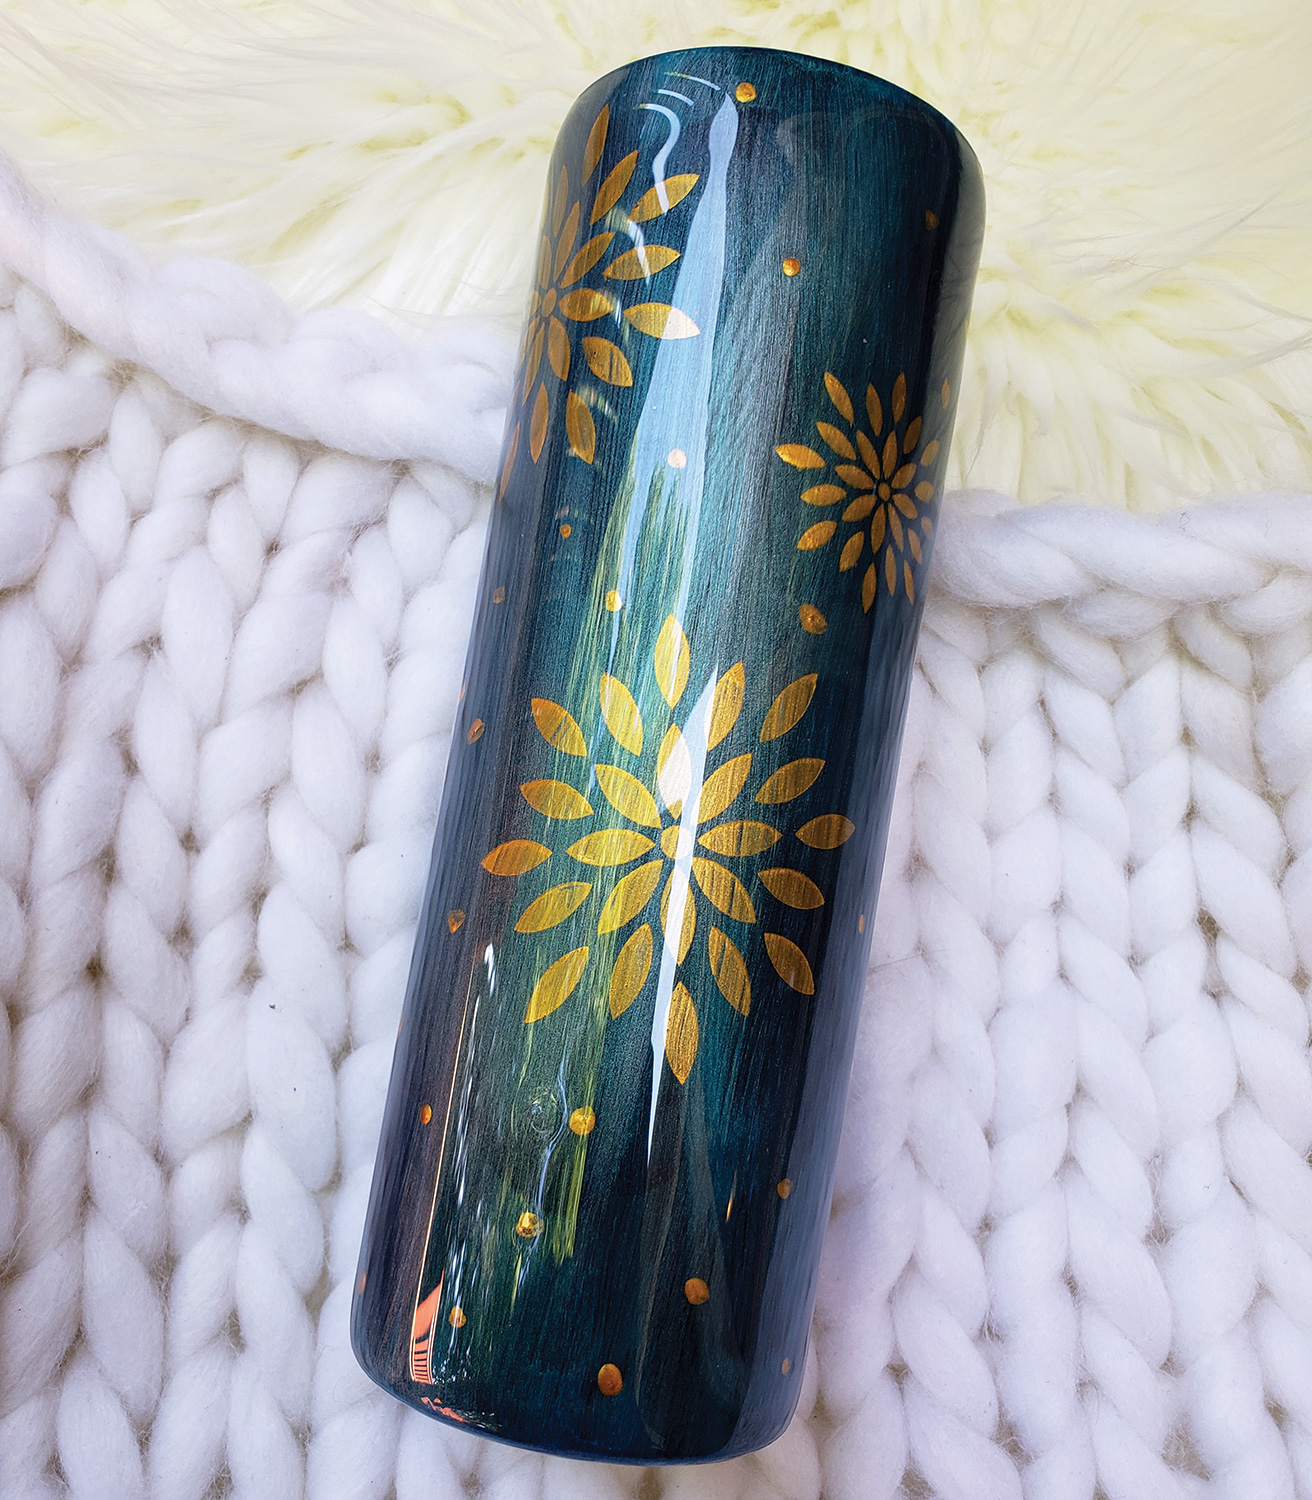 Resin and Pearl Ex tumbler by Jessica Jewell - facebook.com/BlueberryLaneTumblers